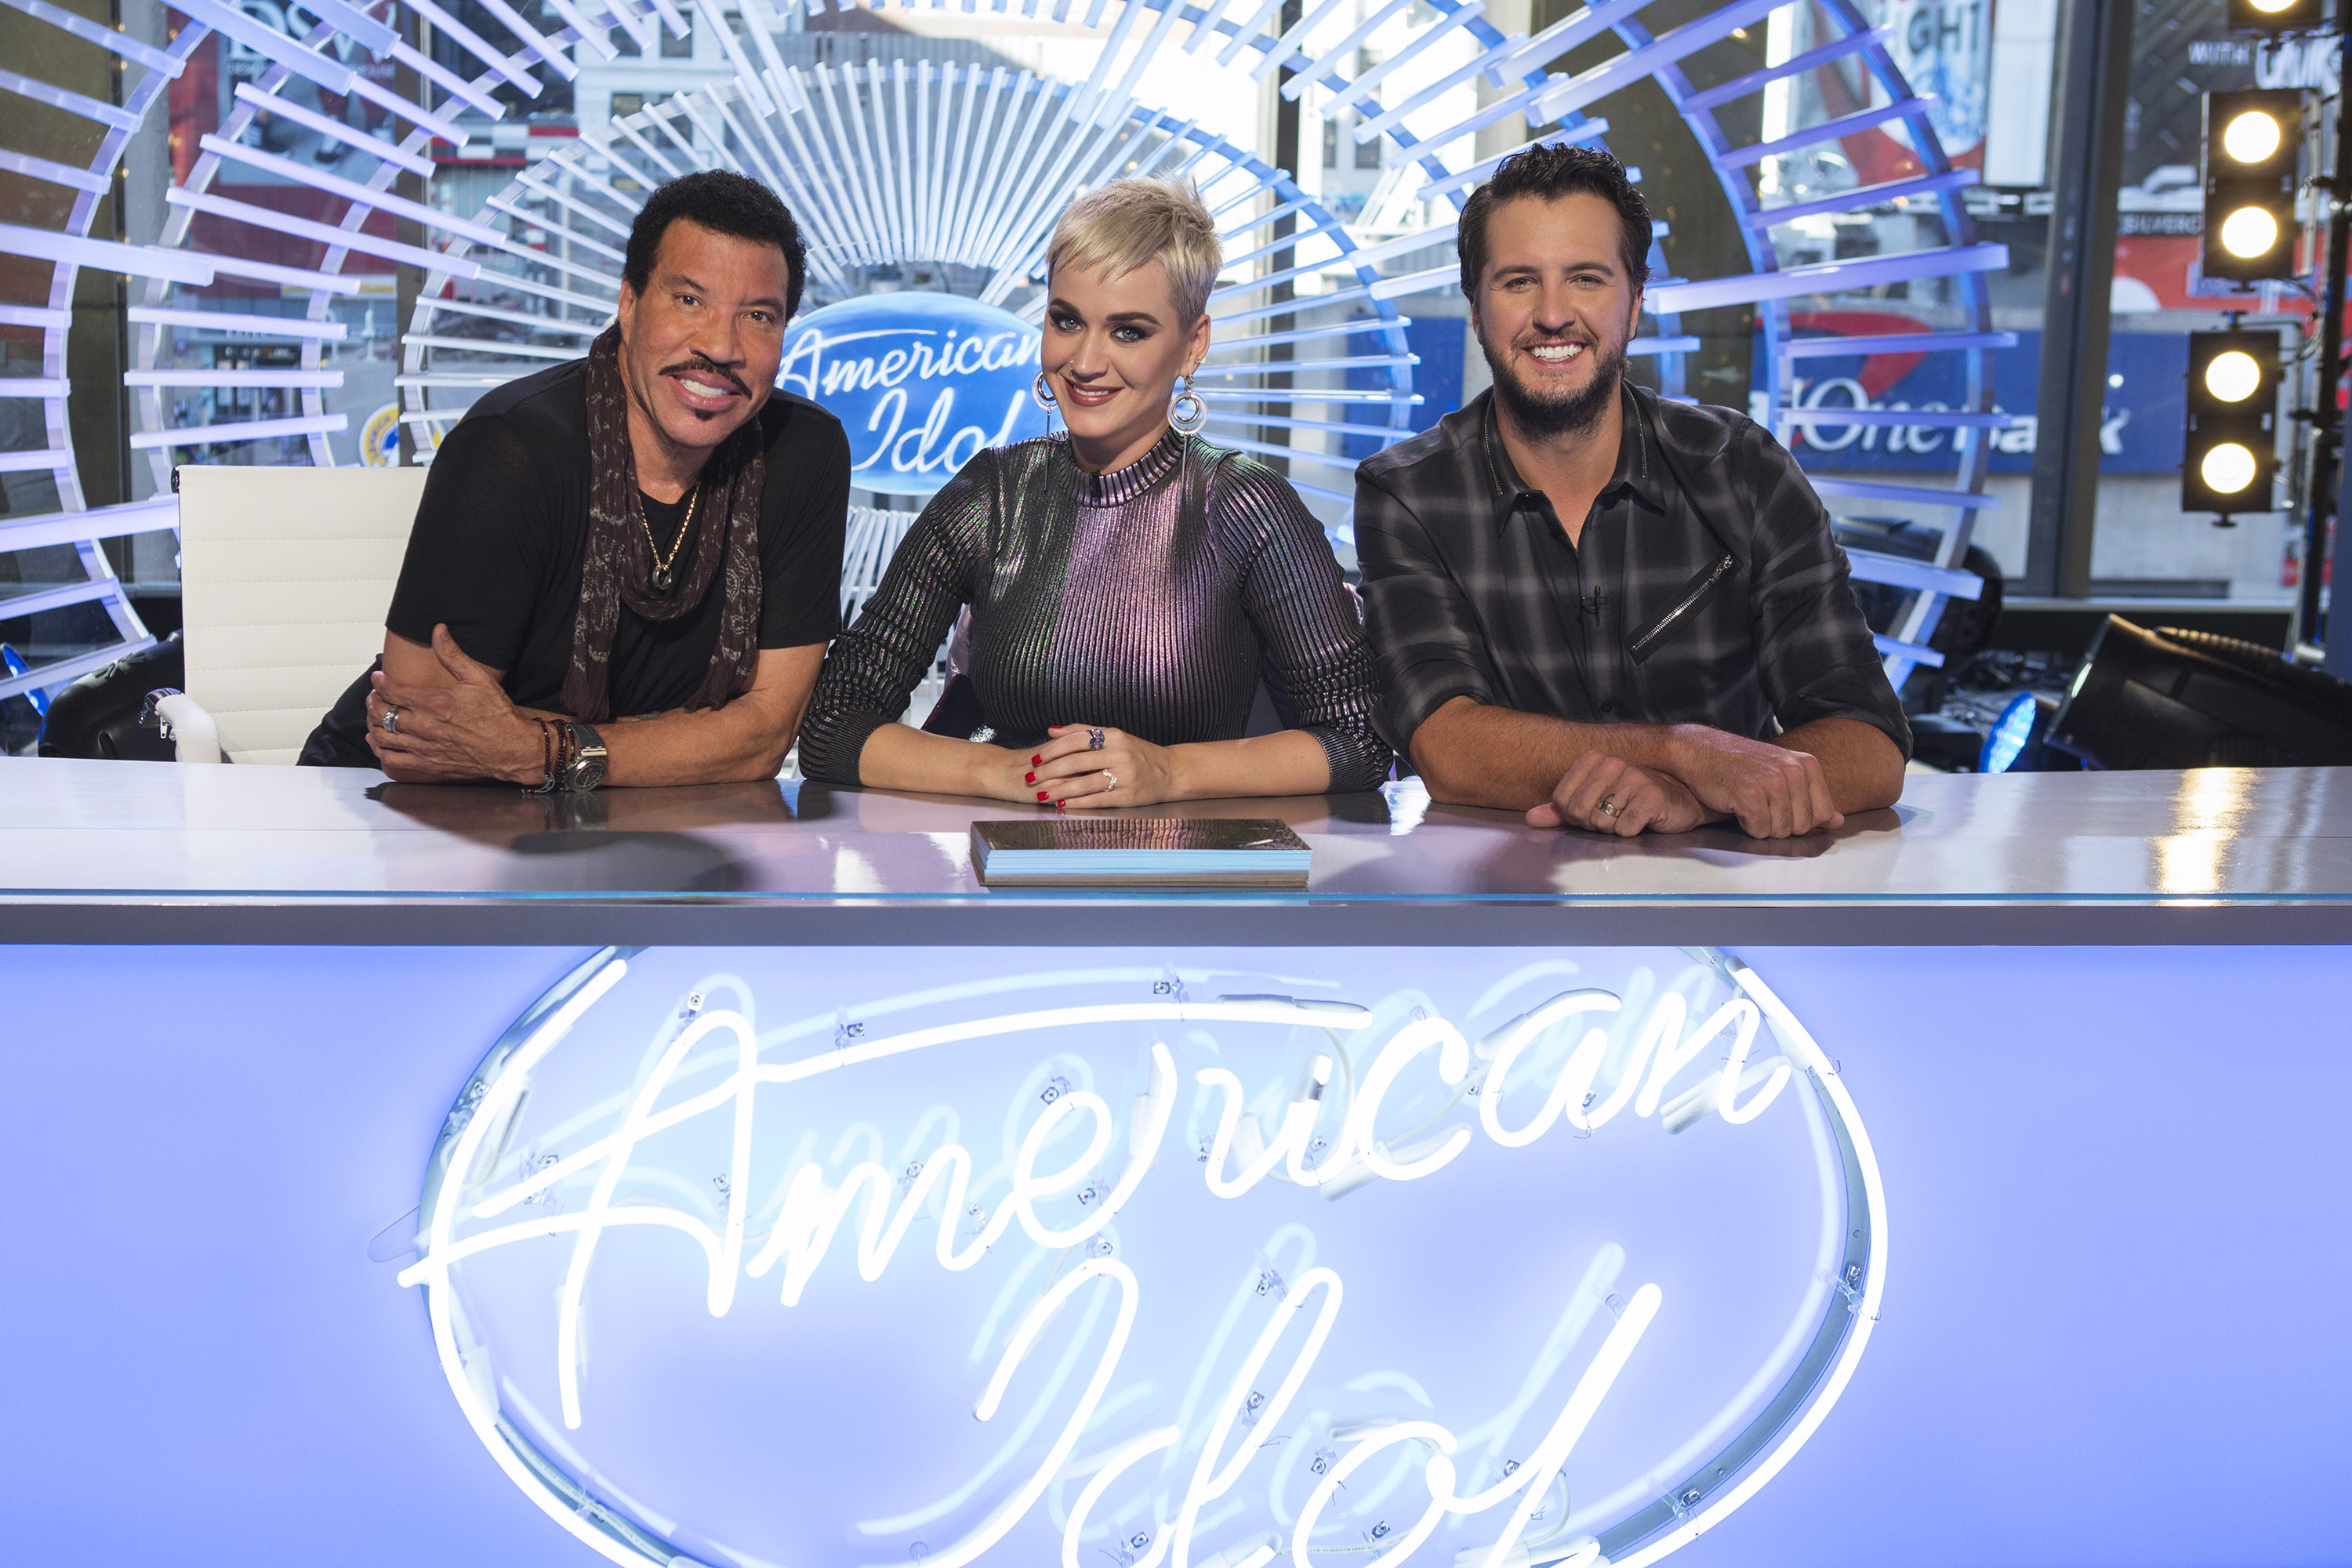 Luke Bryan to miss first 'American Idol' live show due to Covid diagnosis